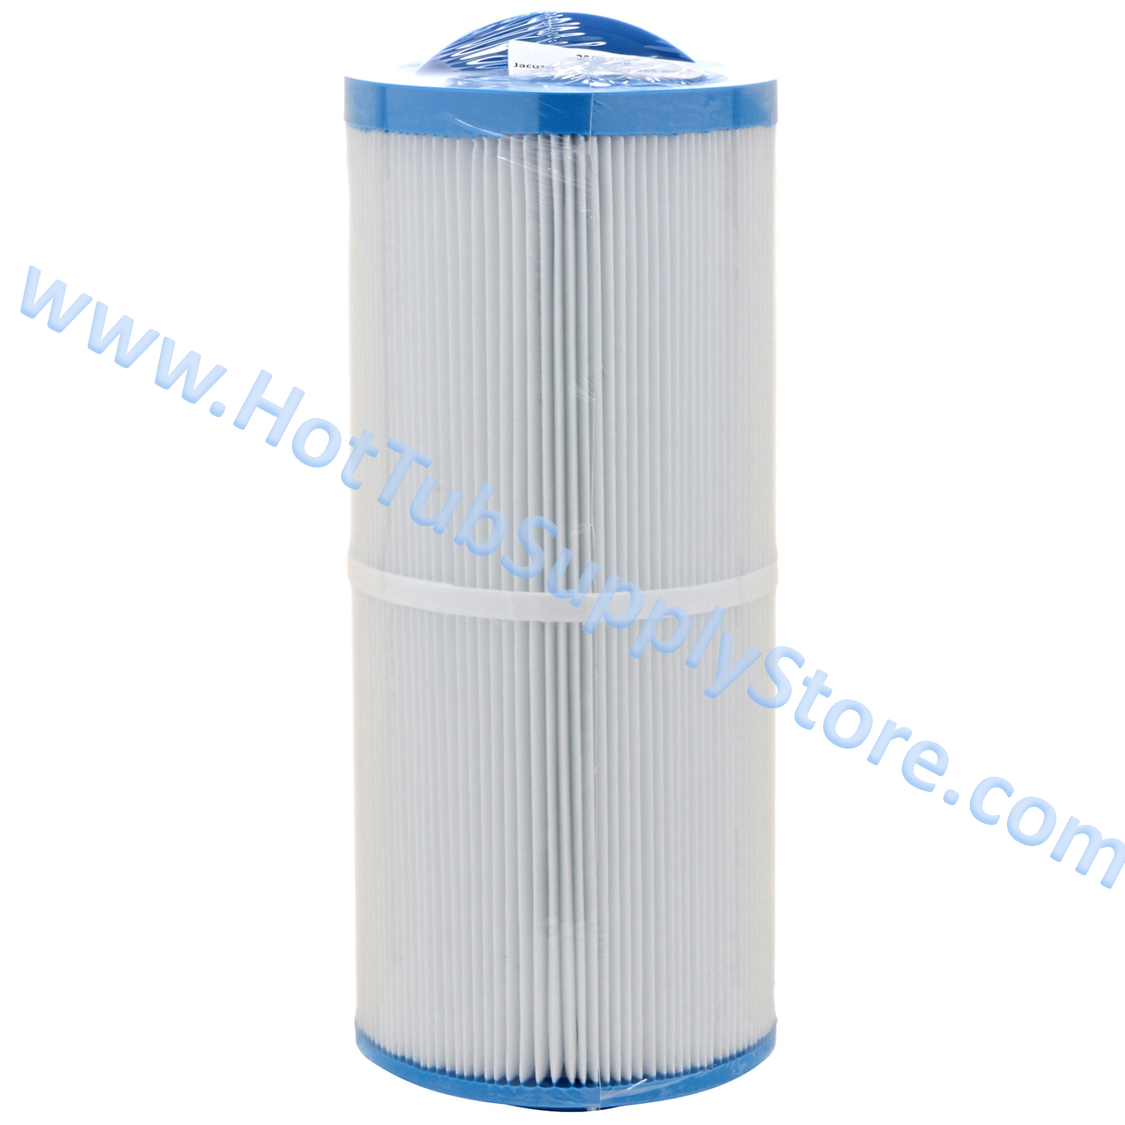 Jacuzzi® J460 Hot Tub Filter Part # 2000-498 – Hot Tub Supply Store